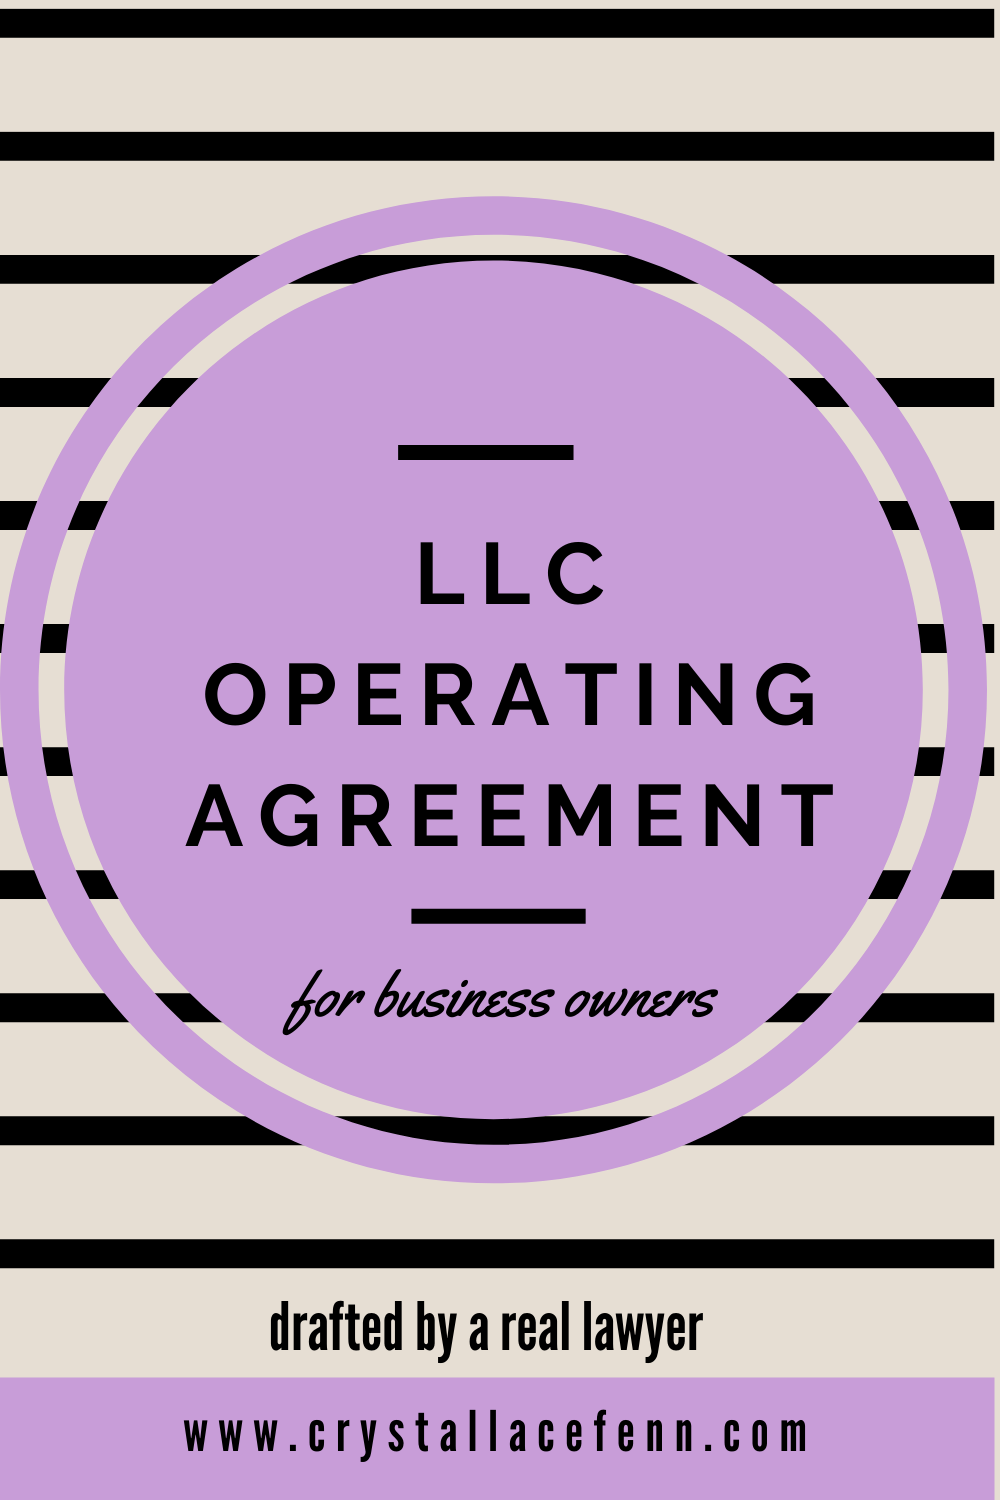 LLC Operating Agreement for Business Owners Etsy in 2020